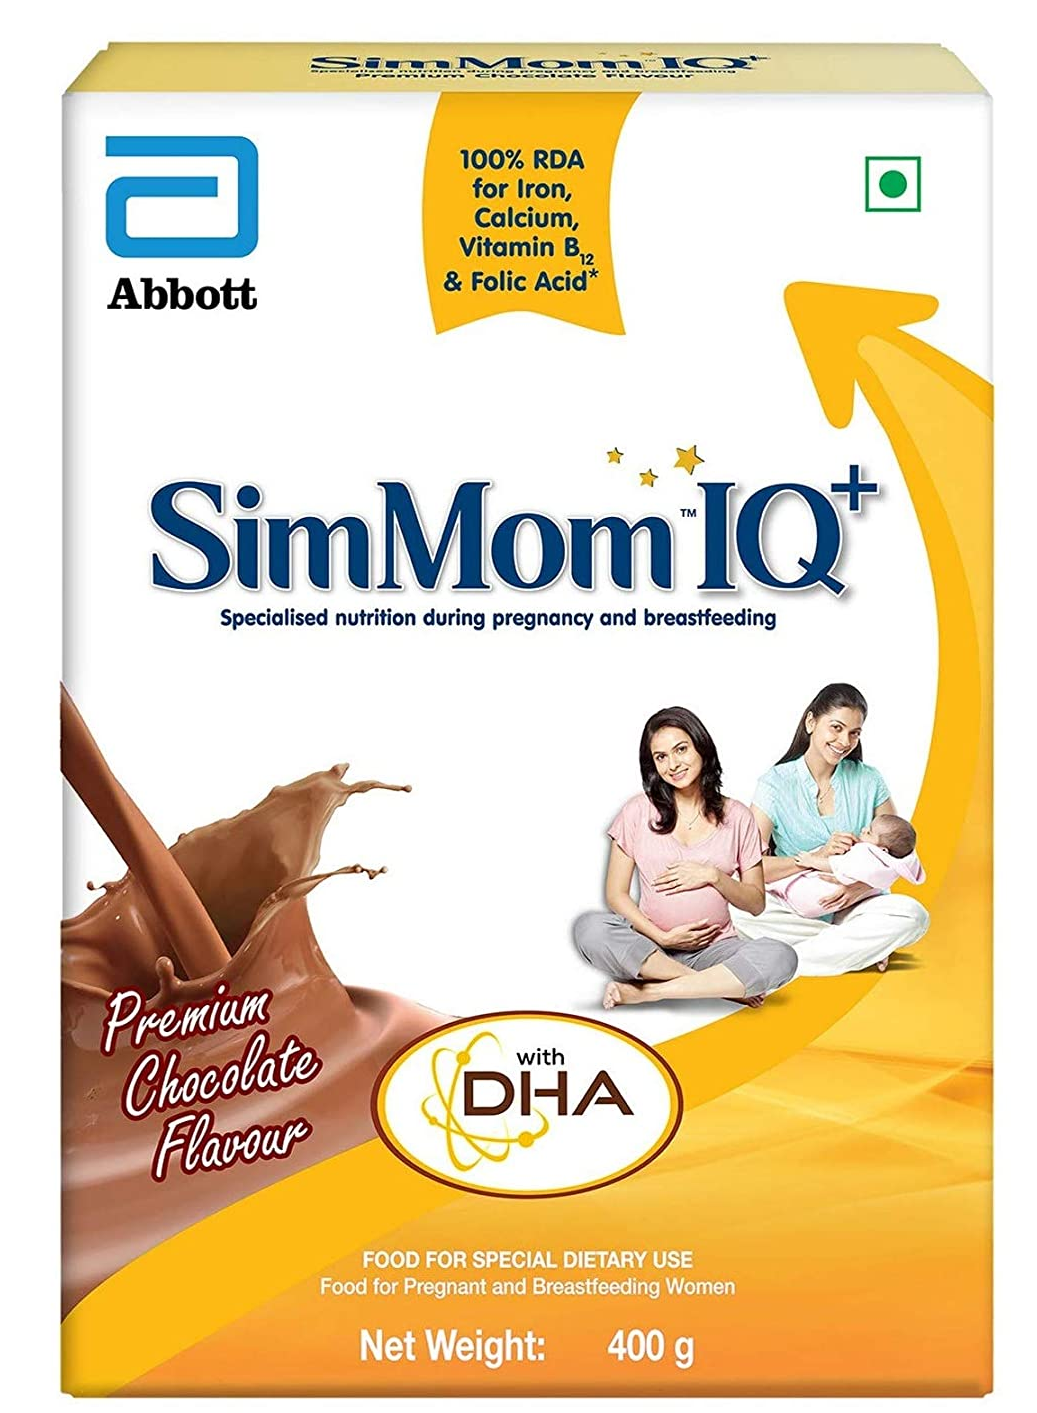 SimMom Powder Vanilla delight